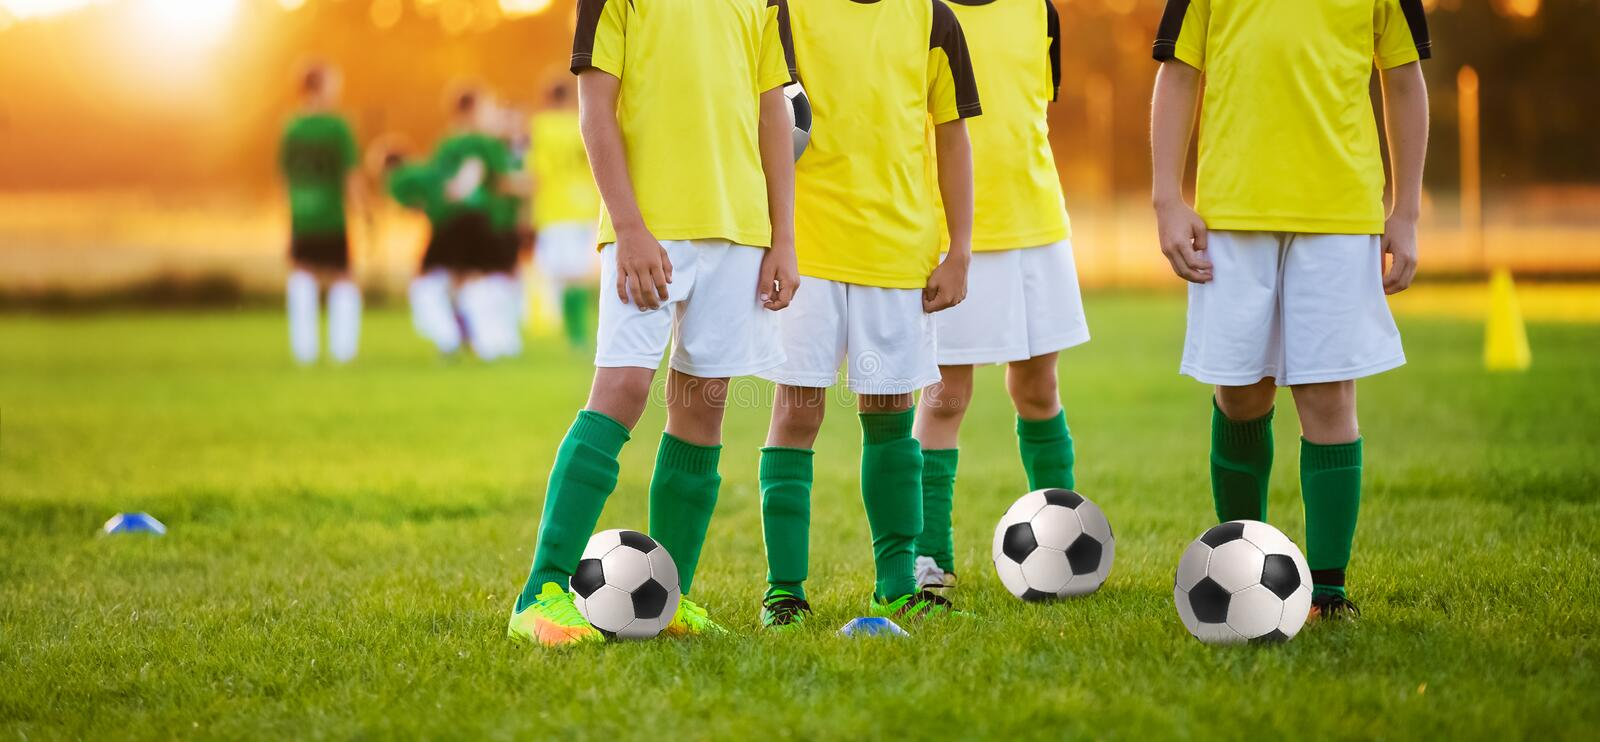 Boys Training Soccer. Children Playing Football in a Stadium. Soccer Players Team. Football Training for Kids stock images